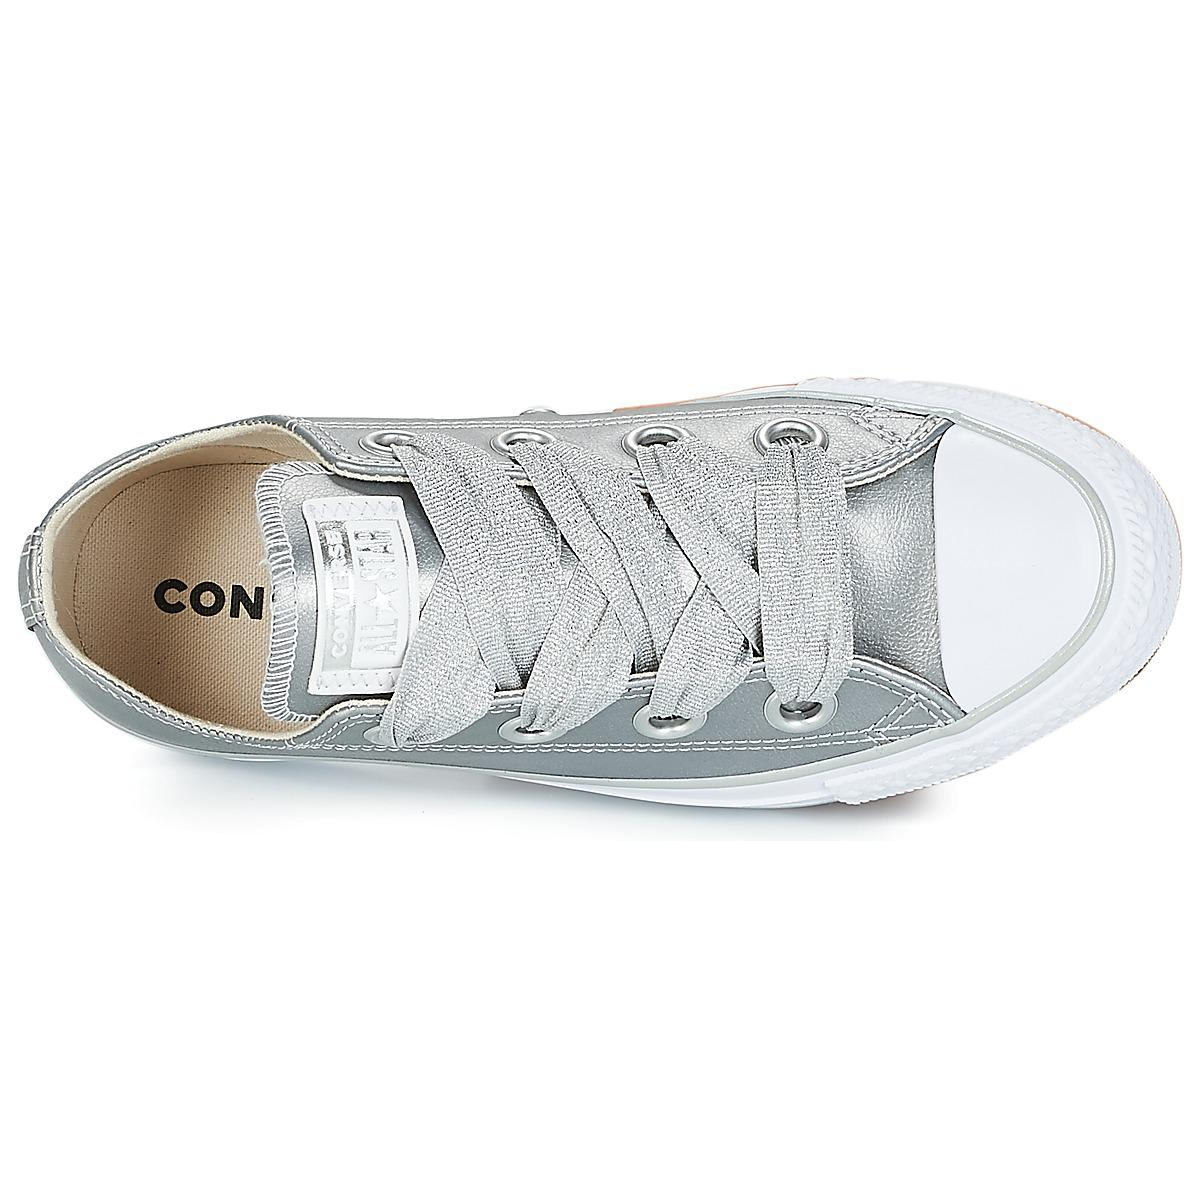 eb364847b652 Converse Chuck Taylor All Star Big Eyelets Ox Shoes (trainers) in Metallic  - Lyst